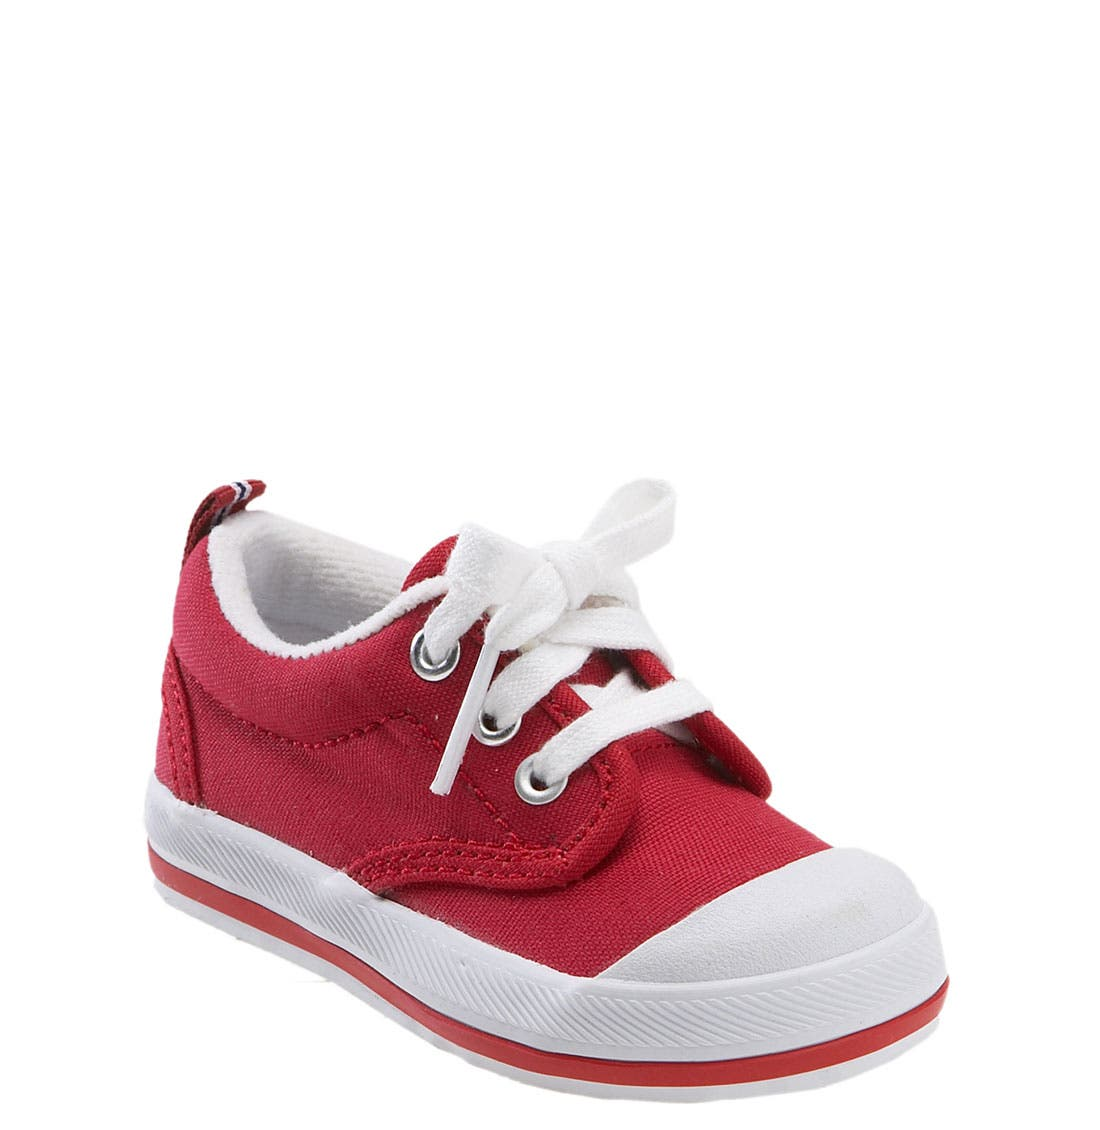 'Graham' Lace-Up Sneaker,                             Main thumbnail 1, color,                             Red Canvas